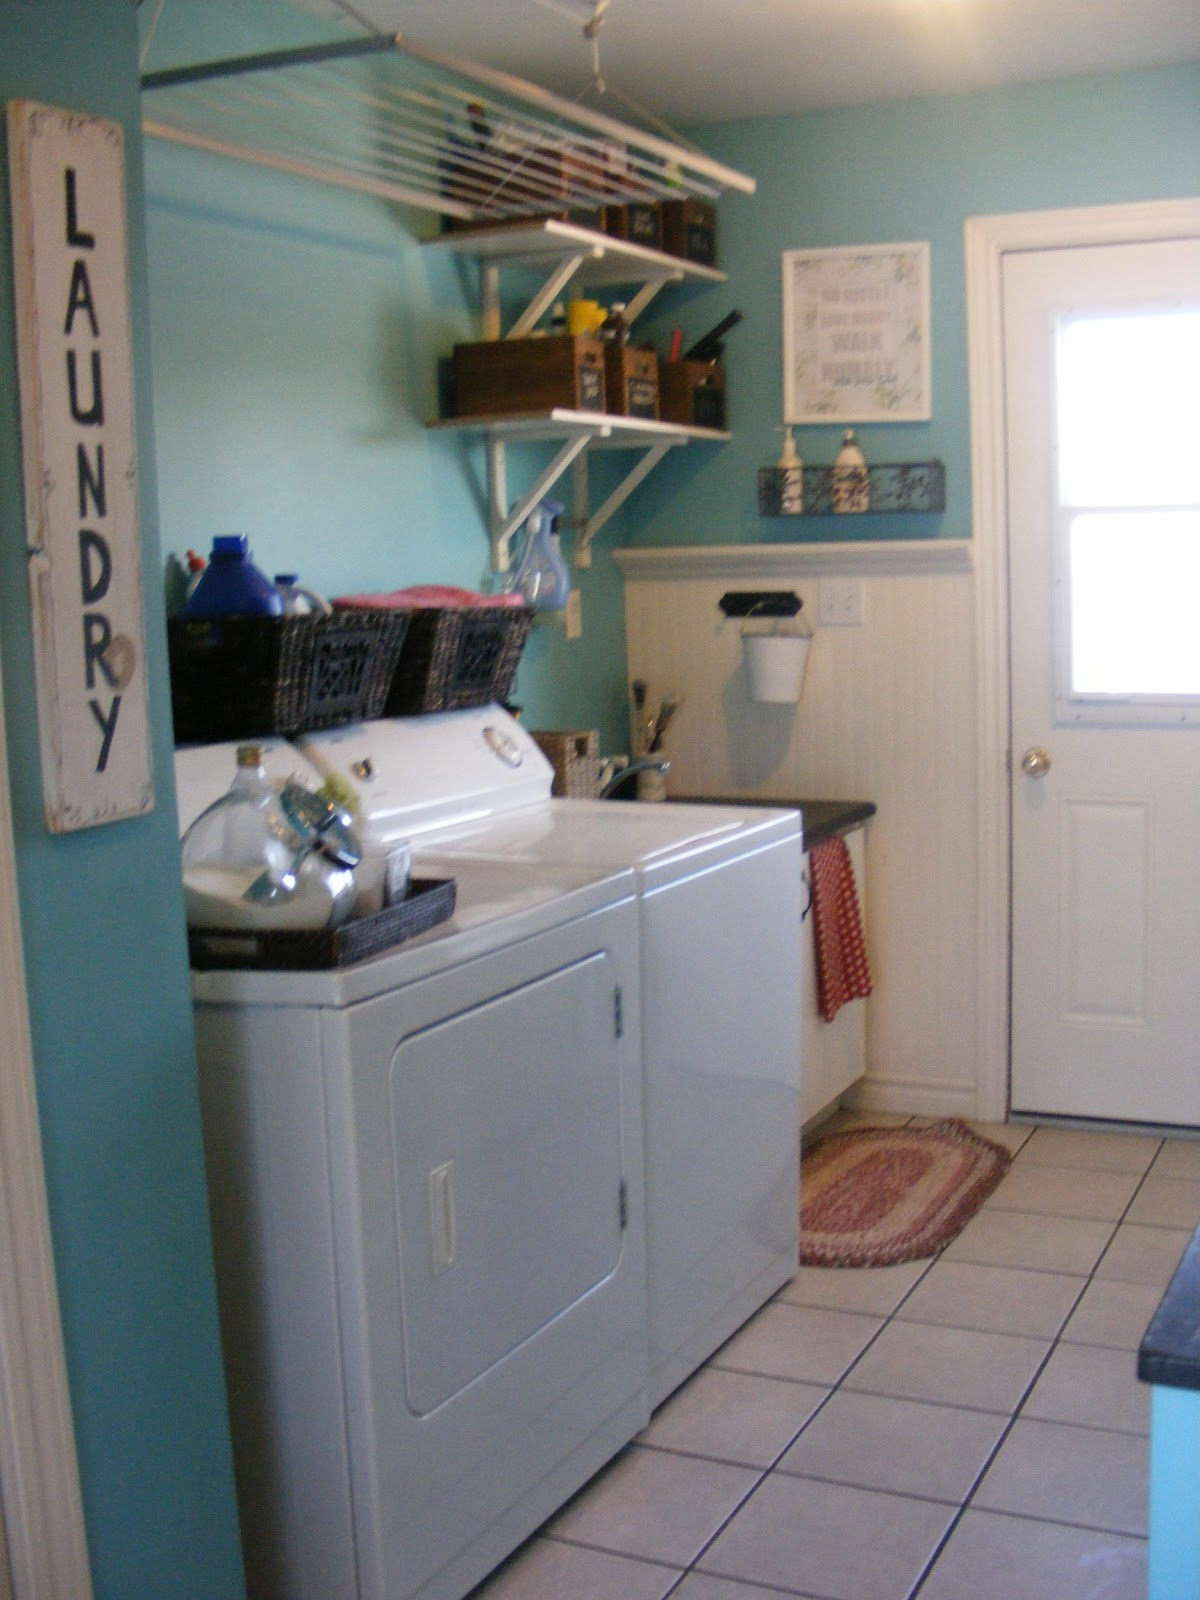 Home staging 101 part 1 laundry rooms the complete guide to home staging 101 part 1 laundry rooms solutioingenieria Images